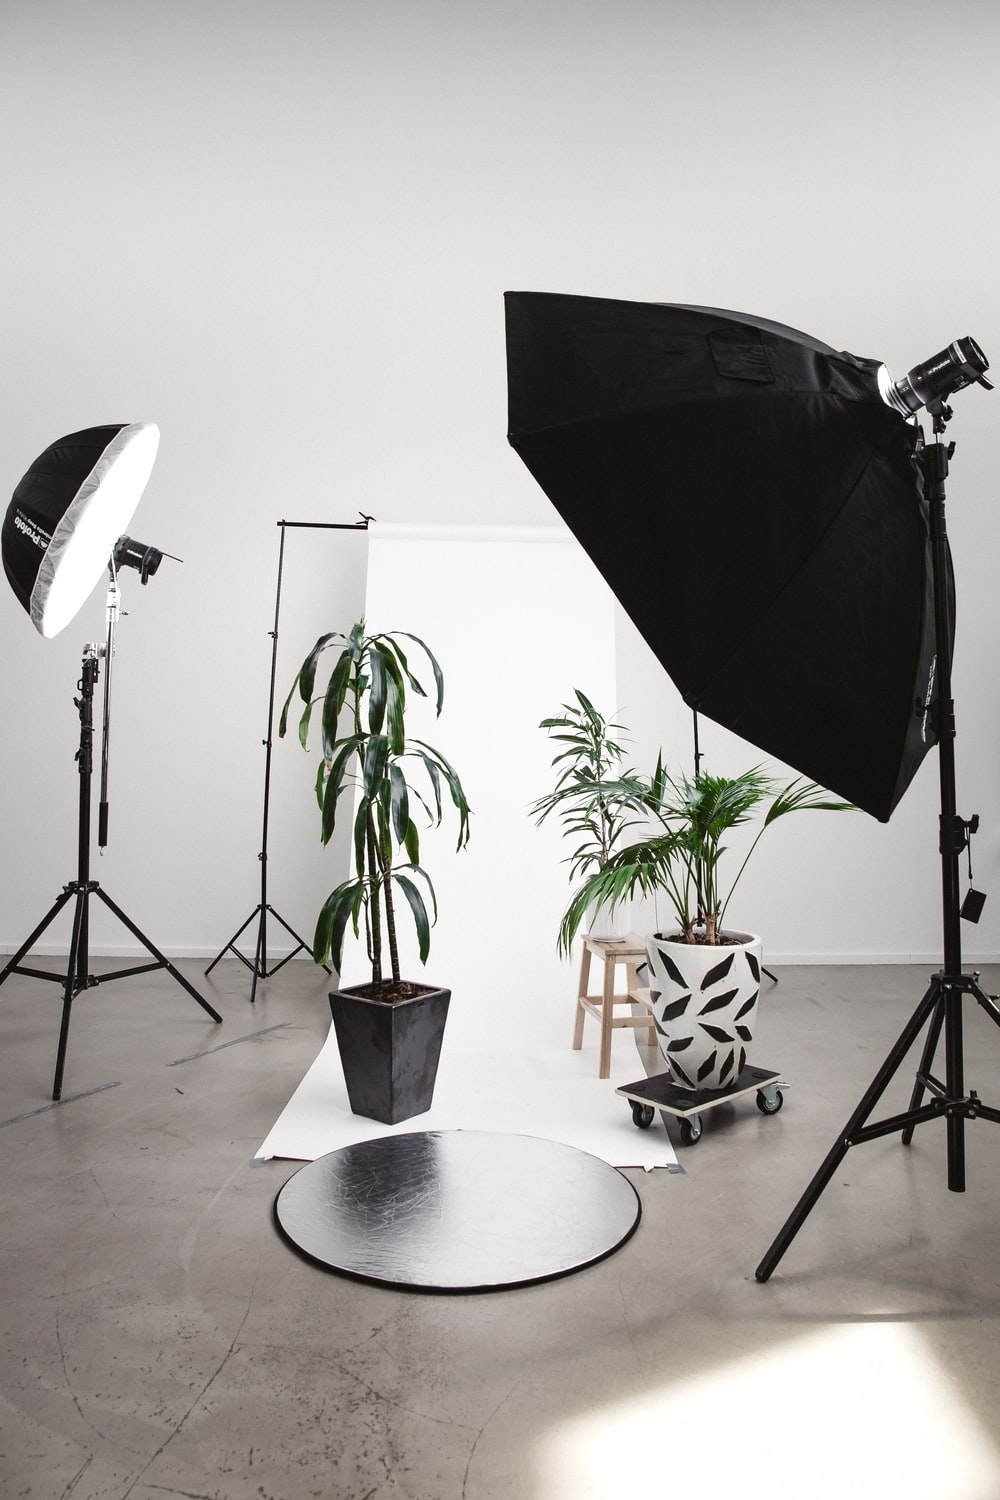 Studio Pictures Hd Download Free Images On Unsplash